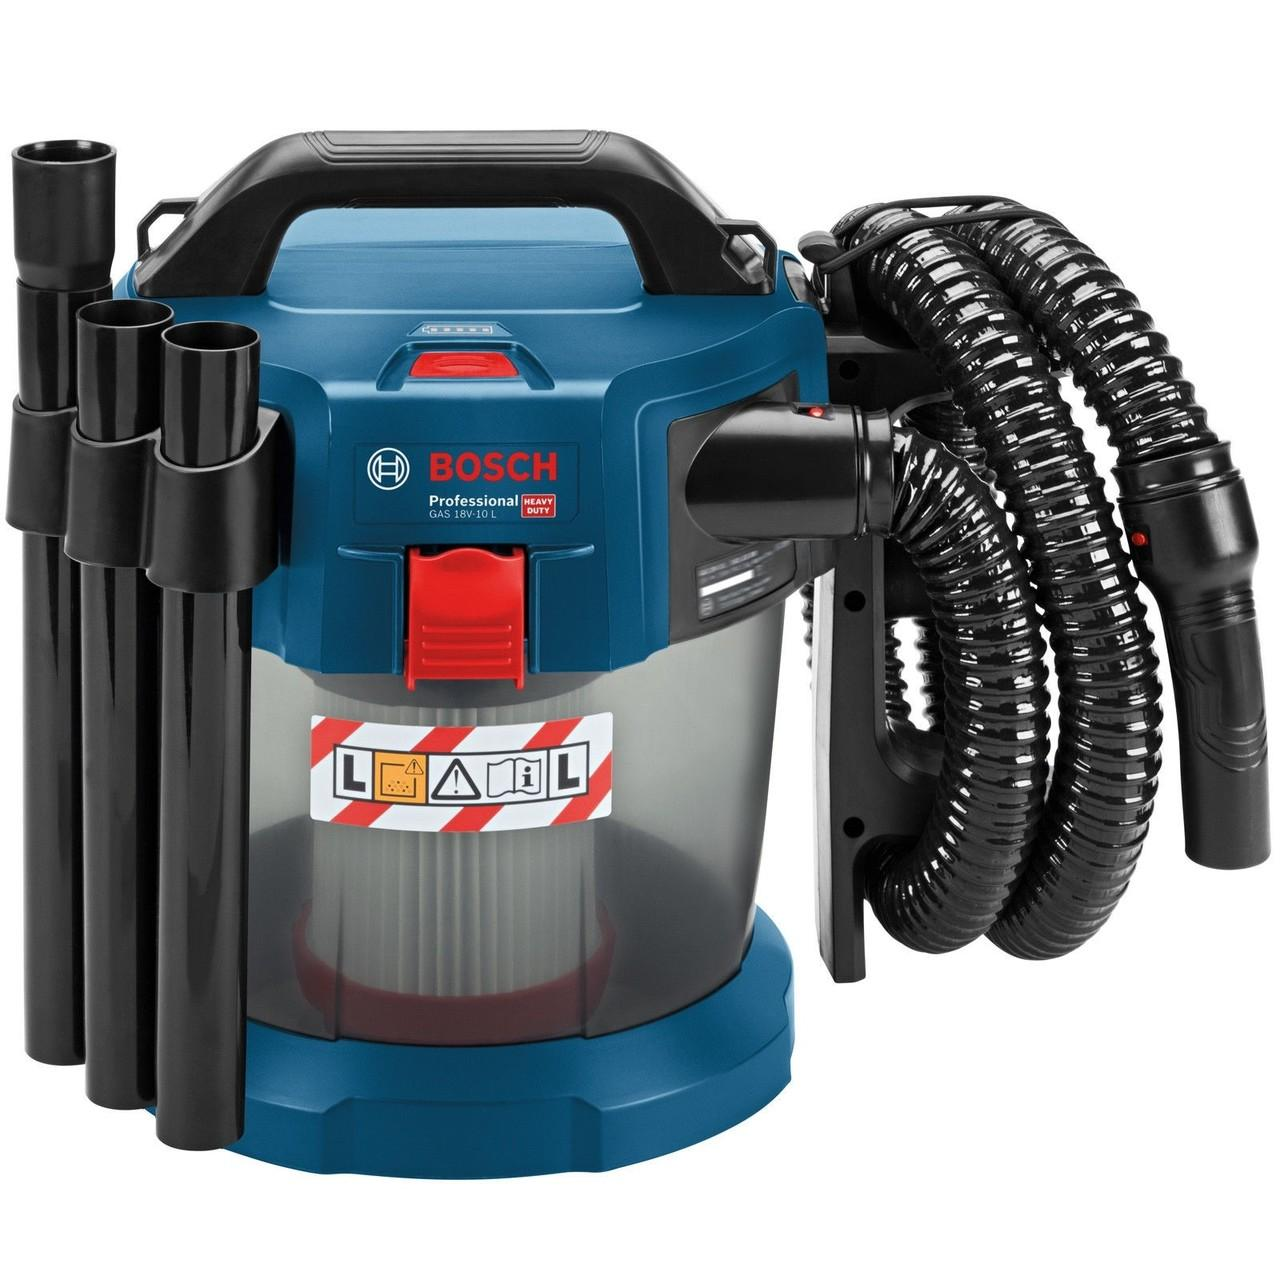 Bosch GAS 18 V-10 L Professional Cordless Wet/Dry Dust Extractor Vacuum Cleaner Body Only